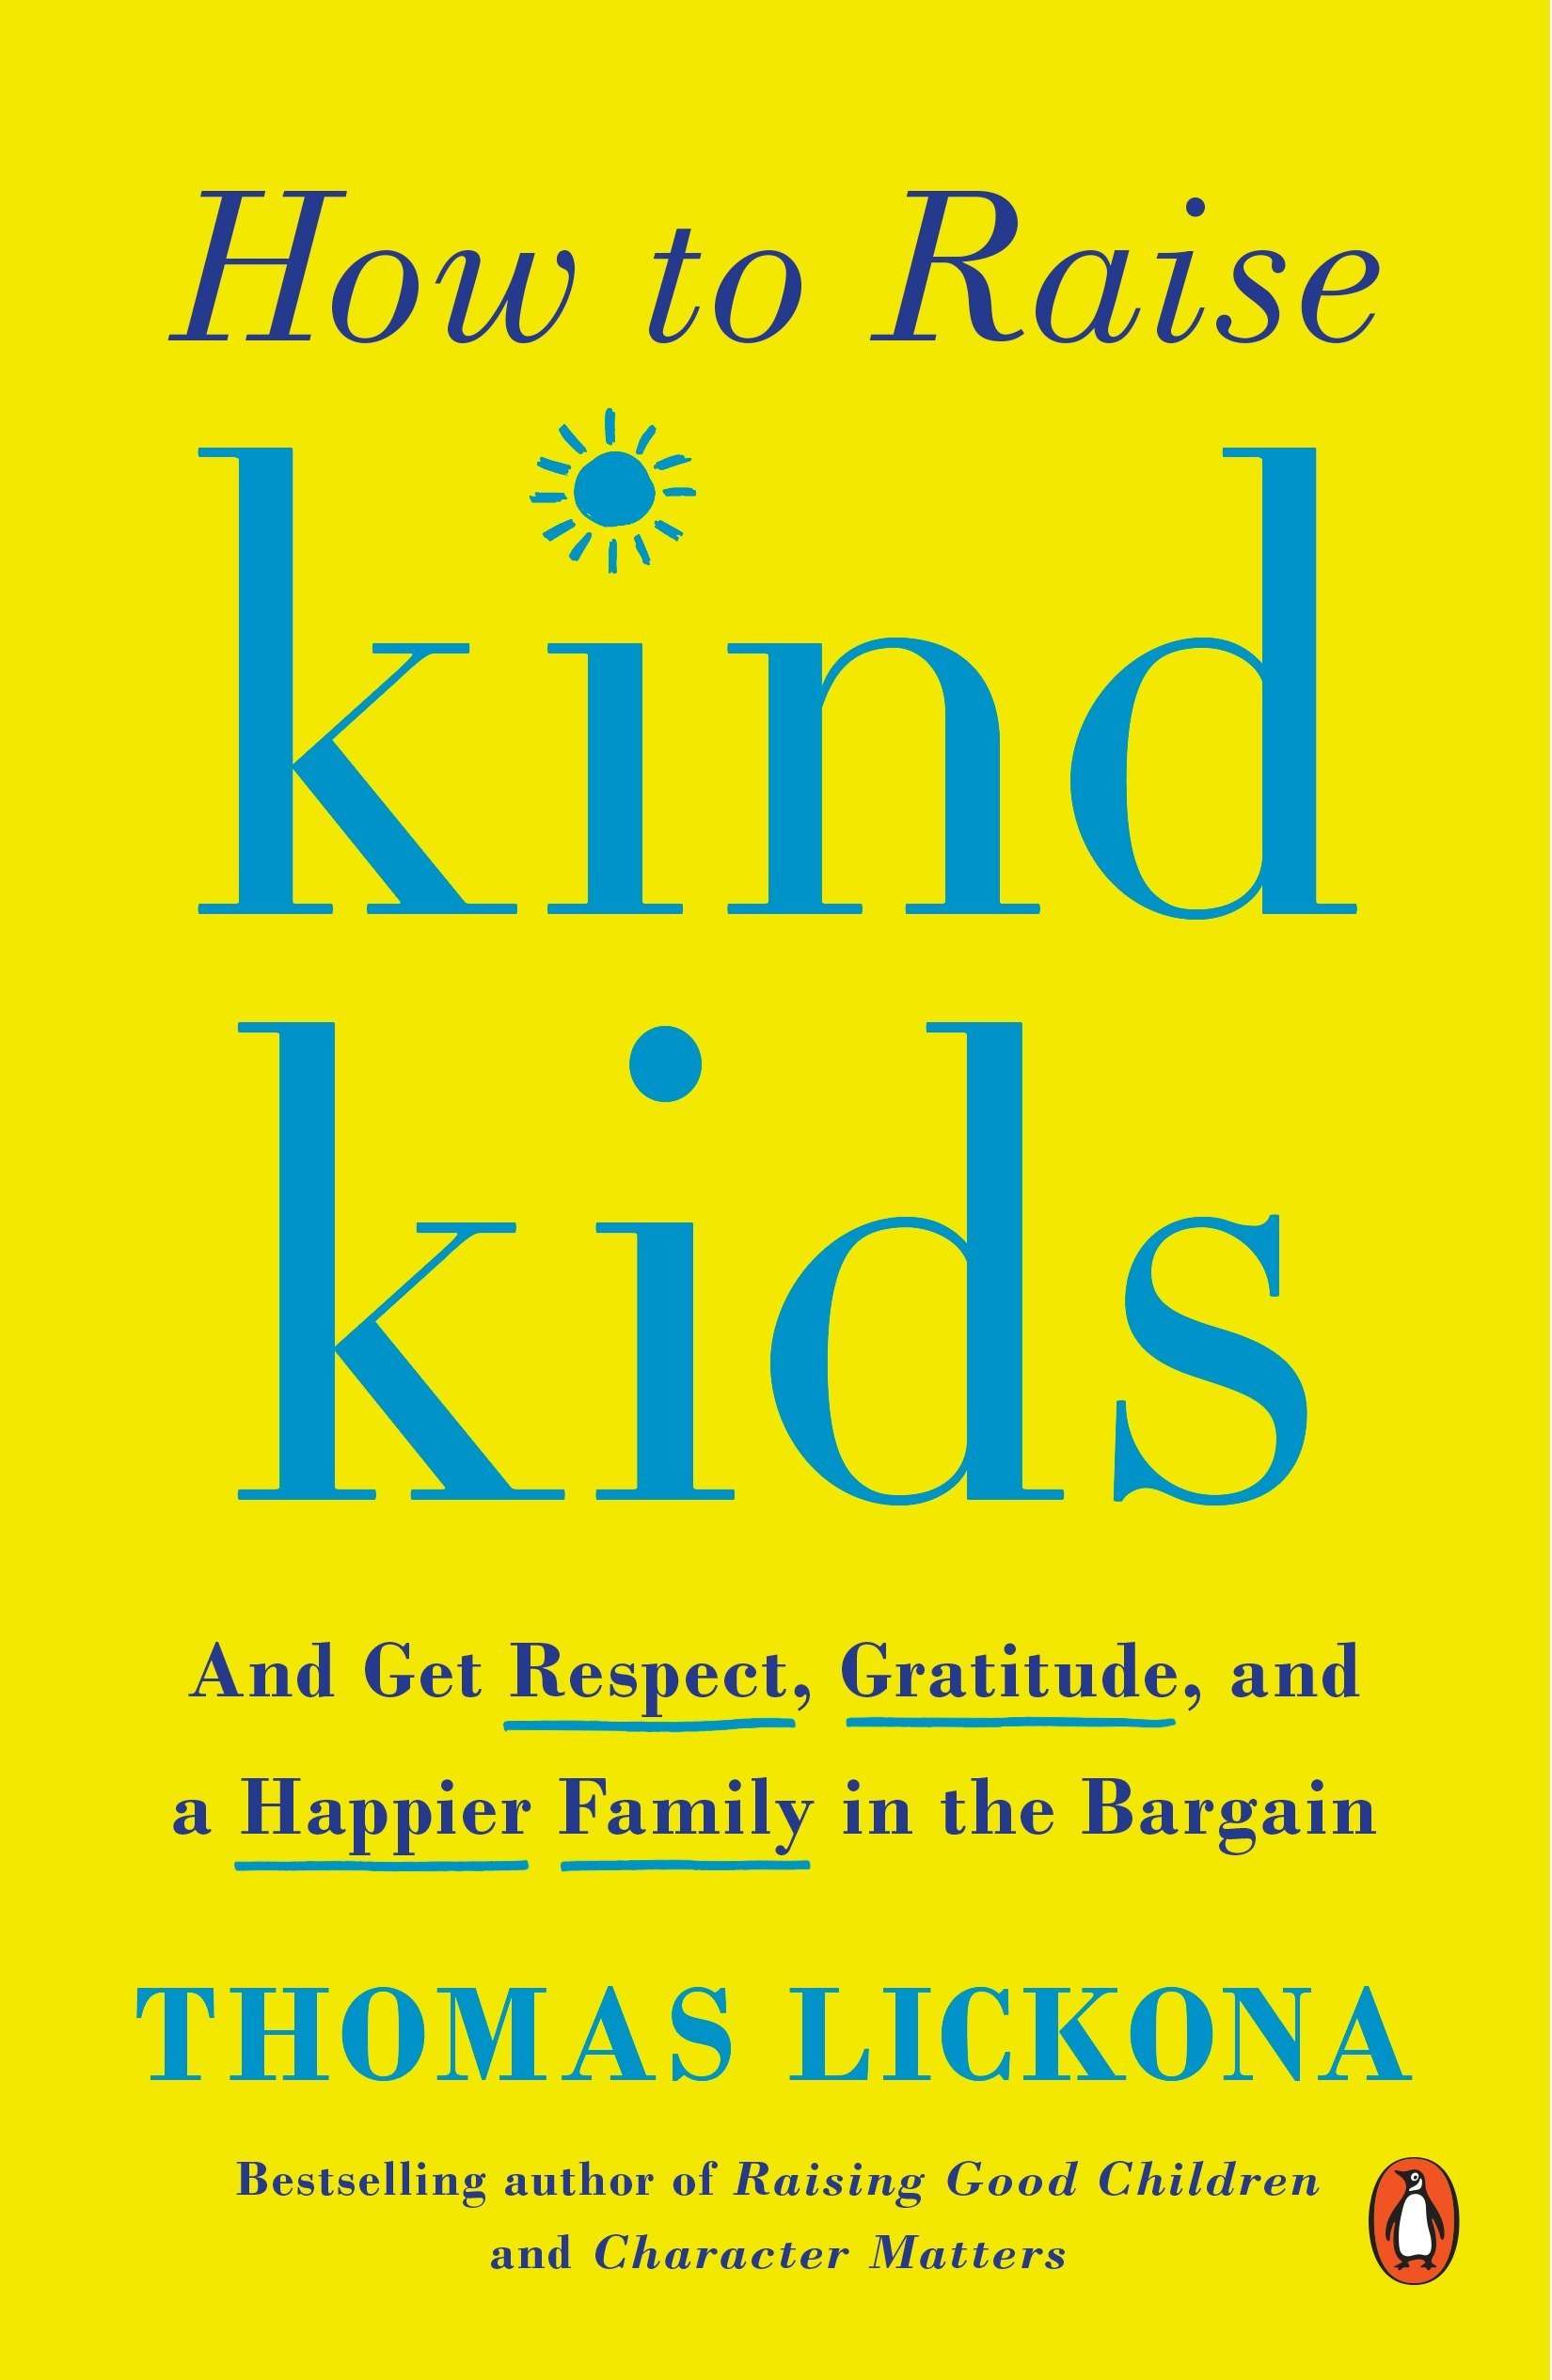 How to raise kind kids : and get respect, gratitude, and a  happier family in the bargain / Thomas Lickona.